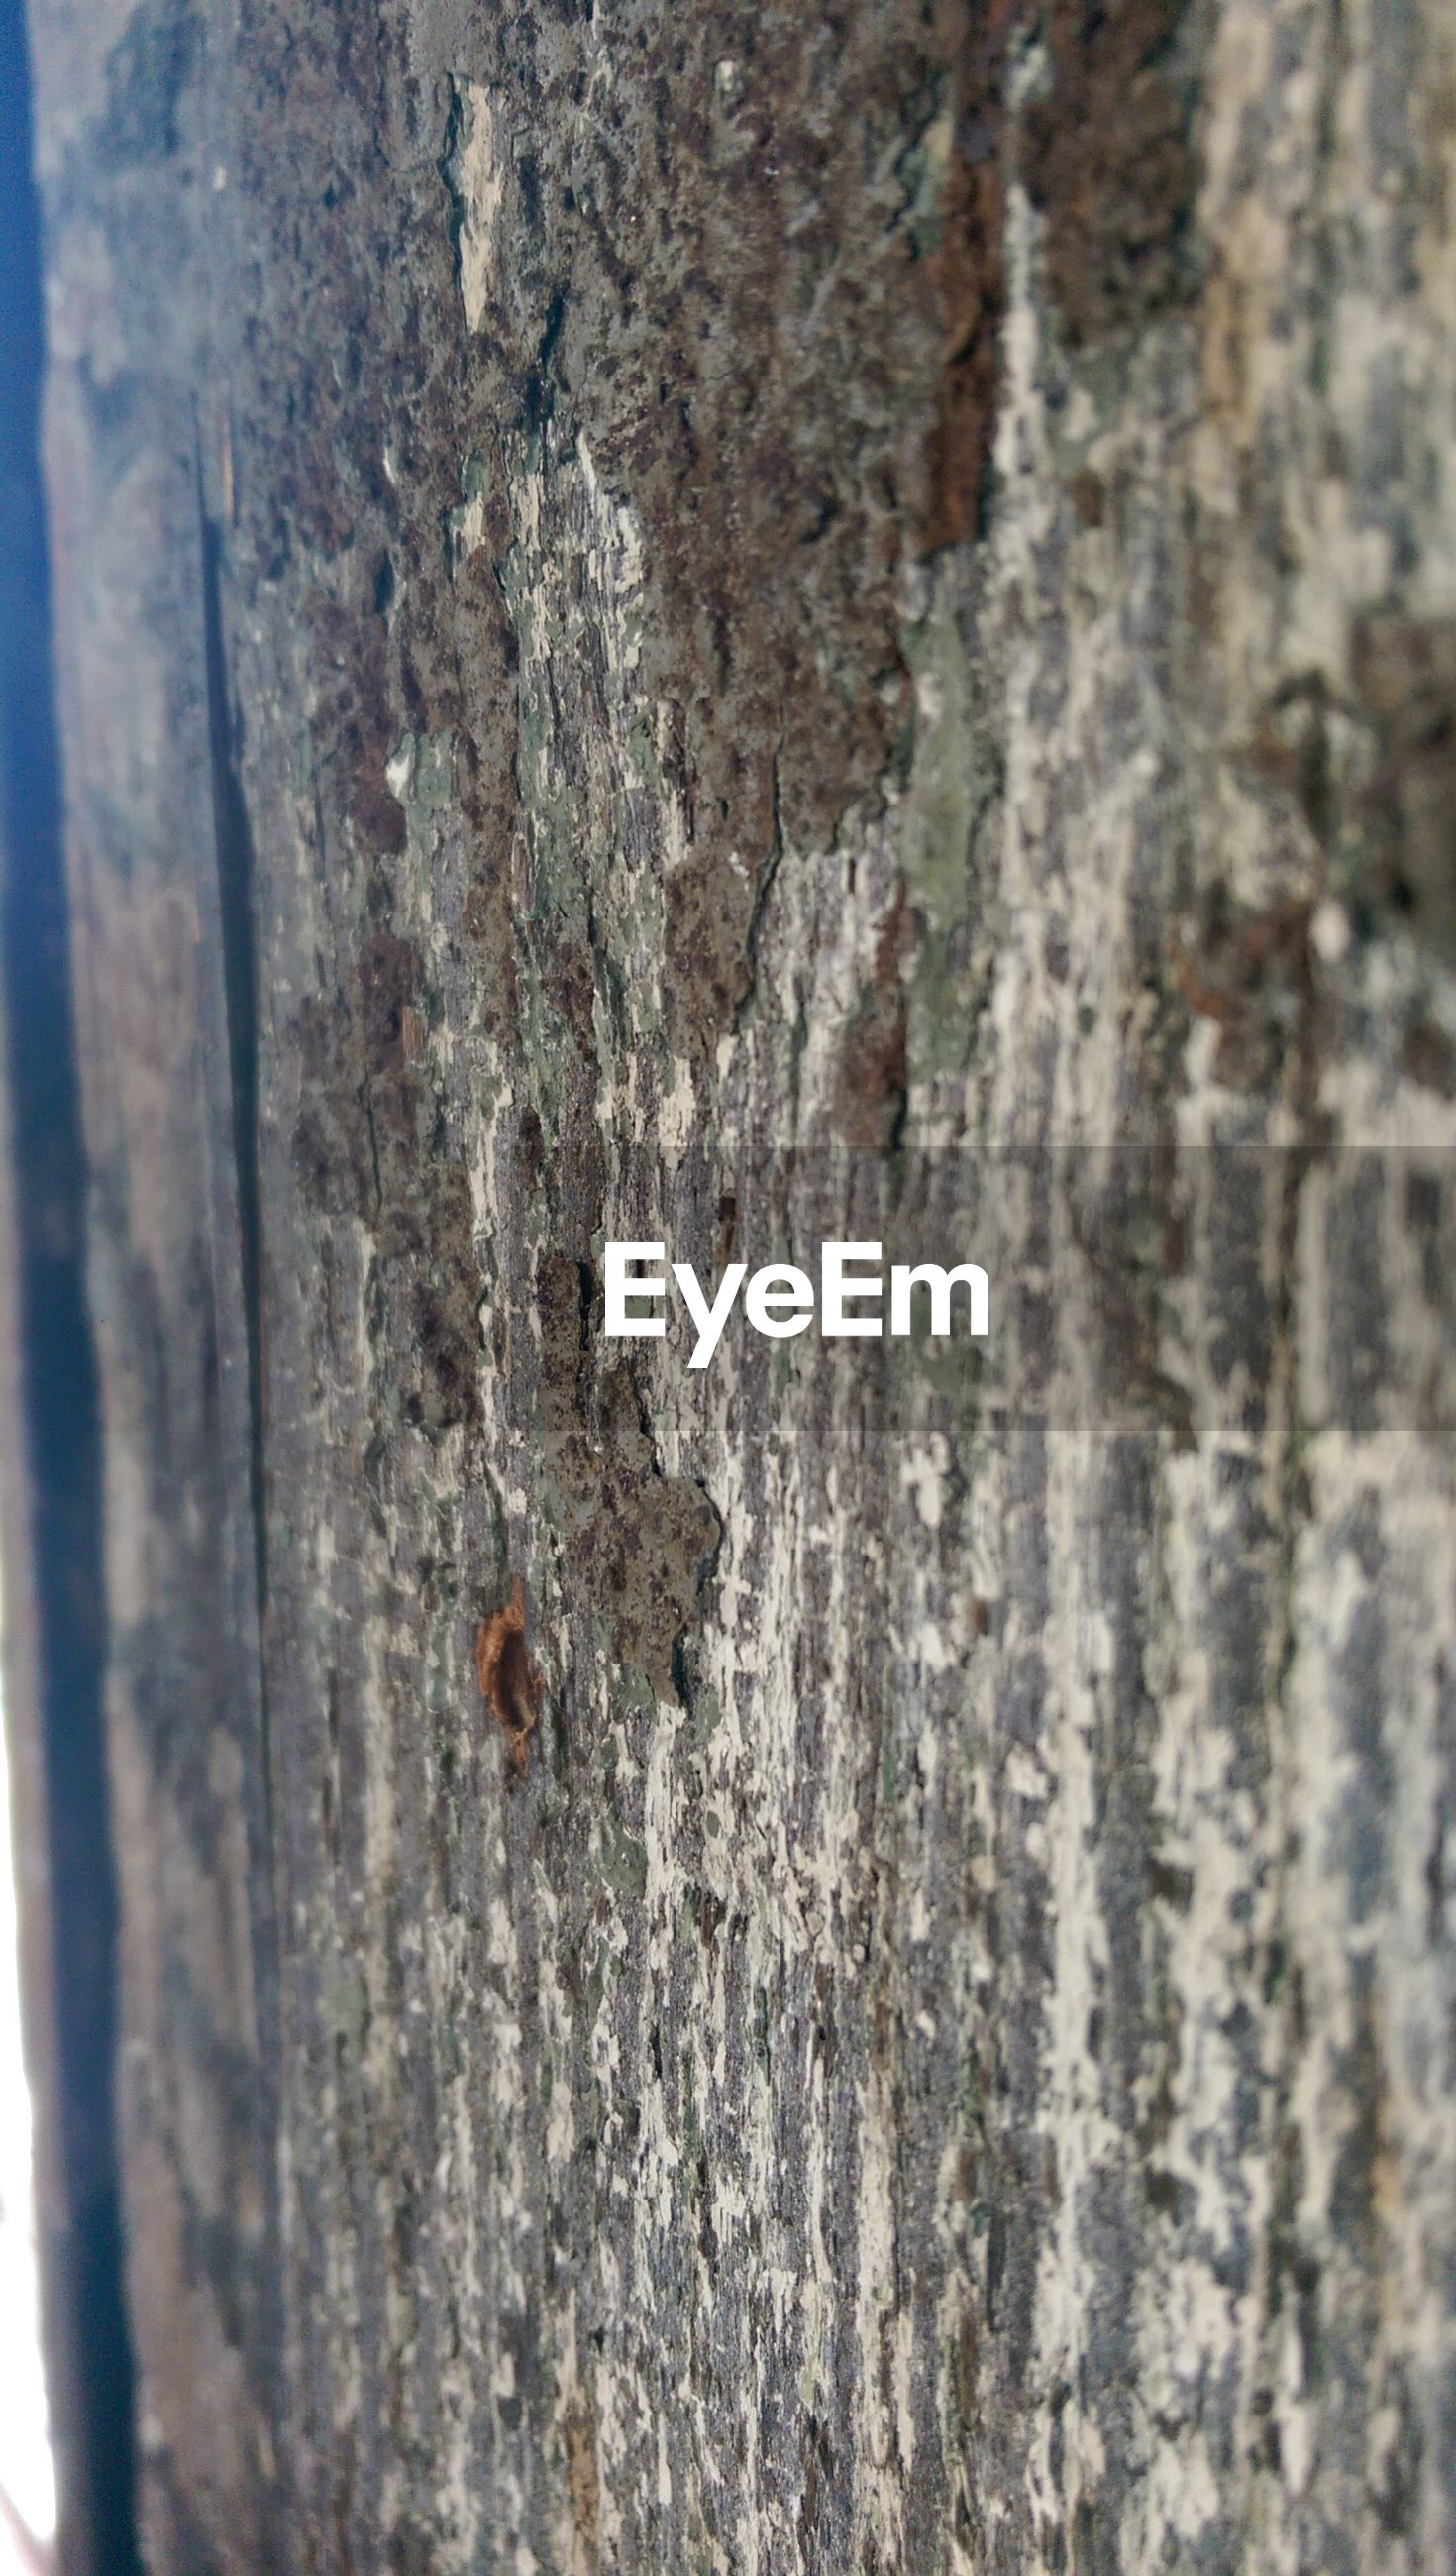 tree trunk, animals in the wild, textured, animal themes, wildlife, insect, one animal, close-up, wood - material, rough, nature, focus on foreground, outdoors, bark, selective focus, tree, day, no people, weathered, beauty in nature